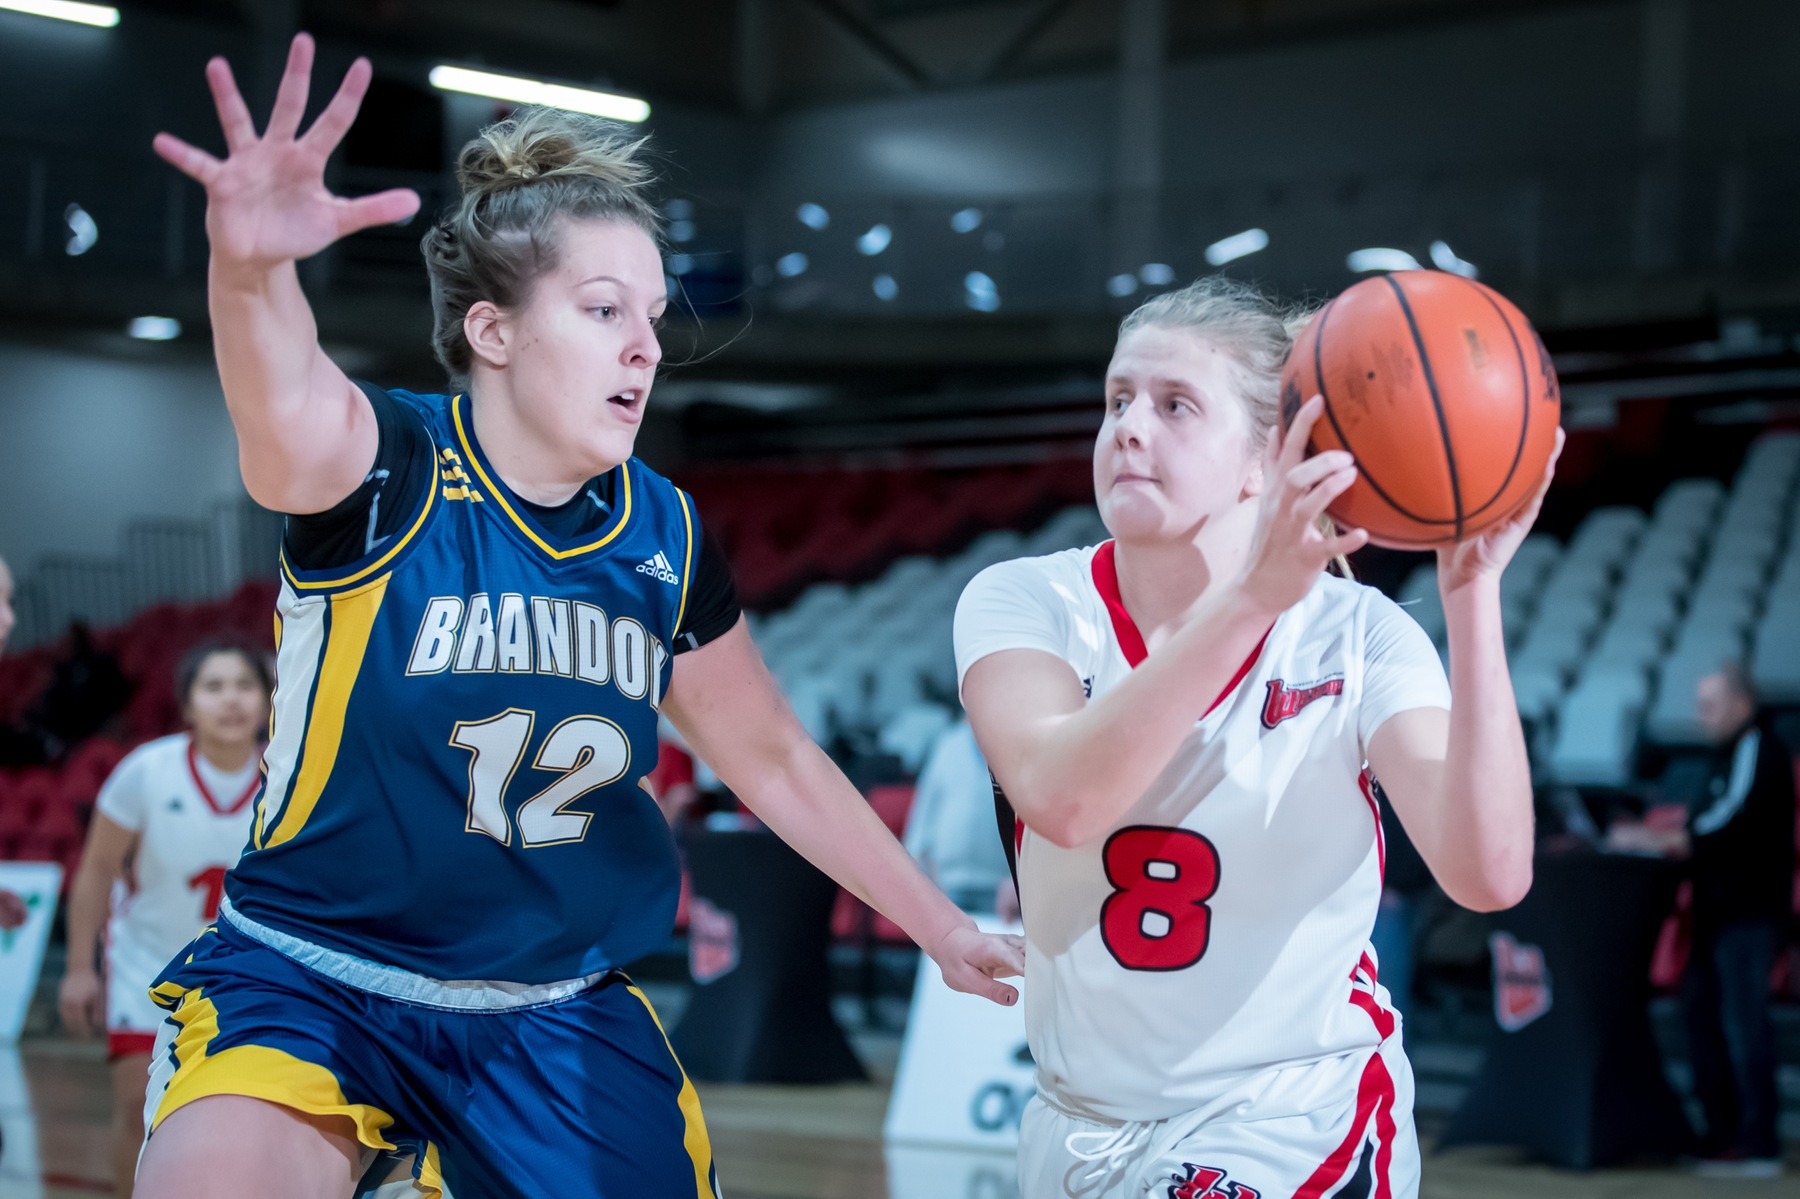 Freshman Mikayla Funk had a career-high 13 rebounds against the Trinity Western Spartans Friday night in Langley, B.C. (Kelly Morton/Wesmen Athletics file)